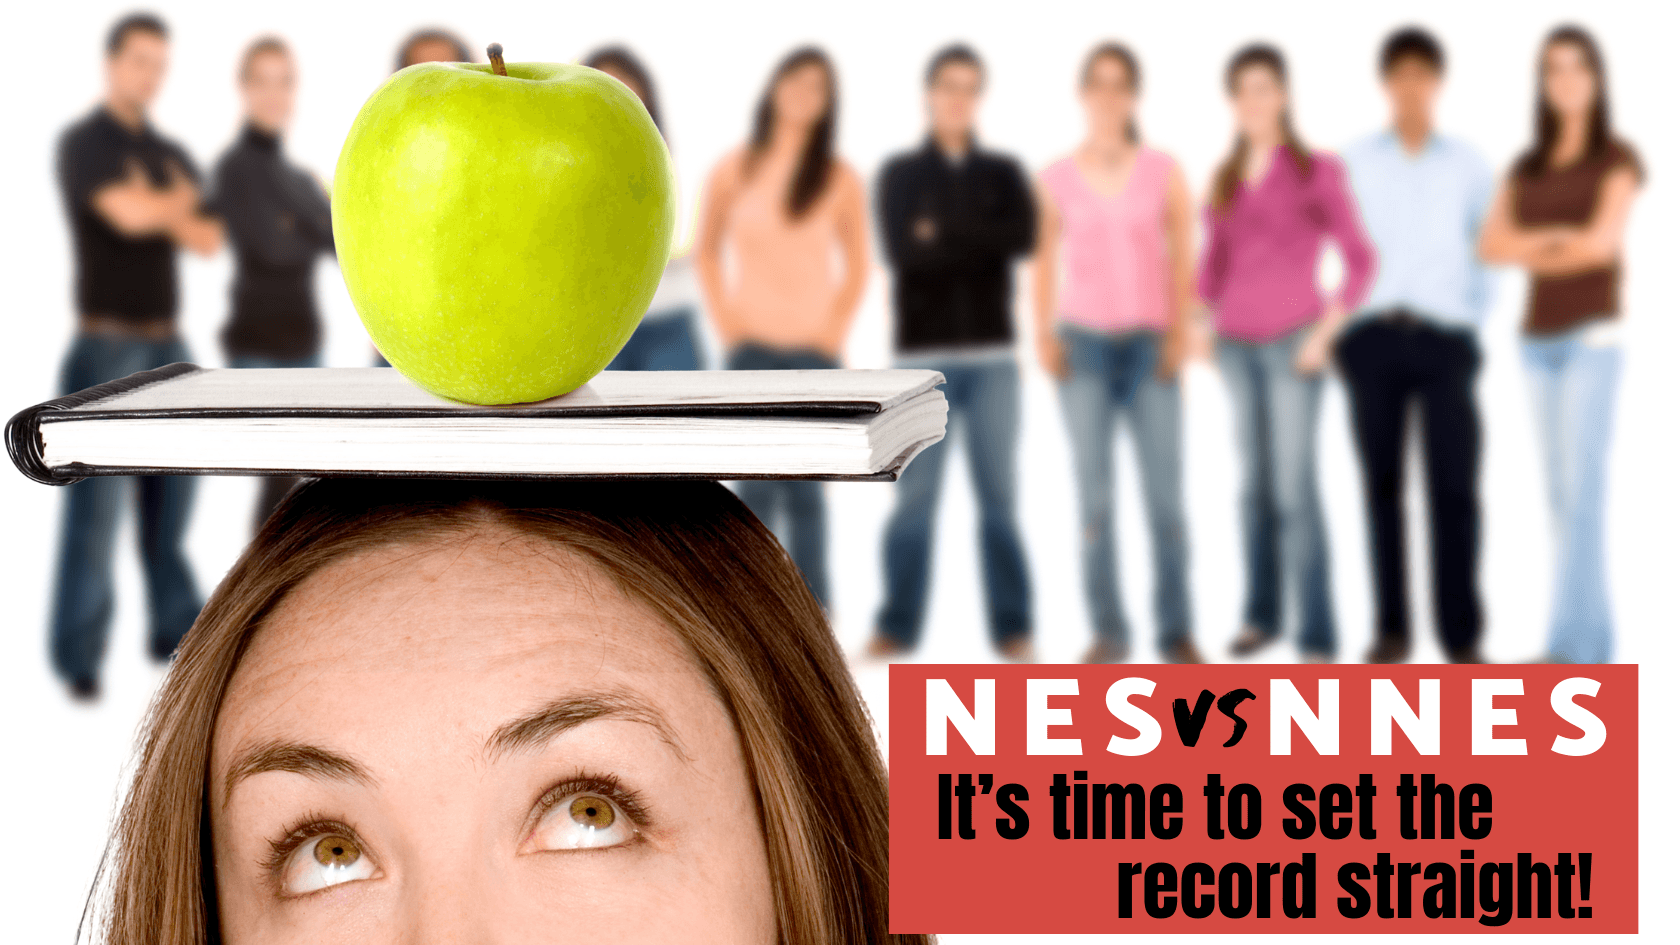 NES vs NNES: It's time to set the record straight